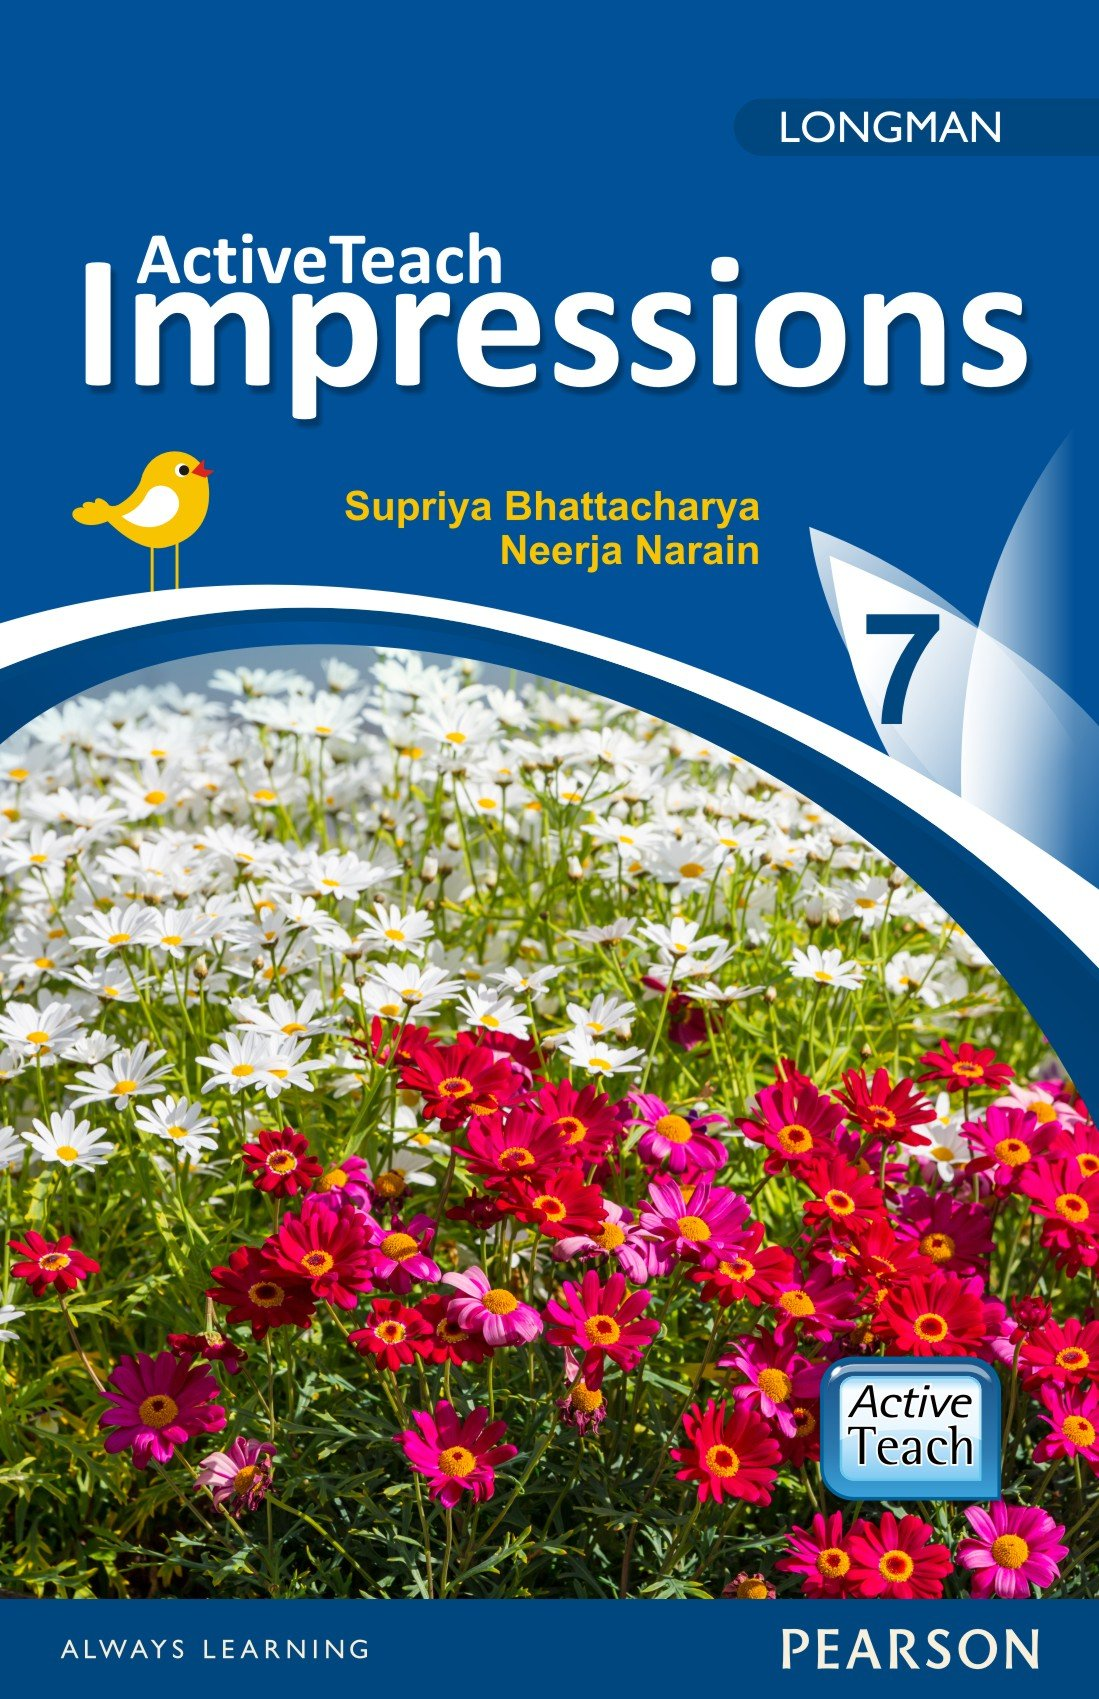 Longman impressions 6 guide ebook array amazon in buy activeteach impressions 7 by pearson for icse english rh amazon in fandeluxe Image collections